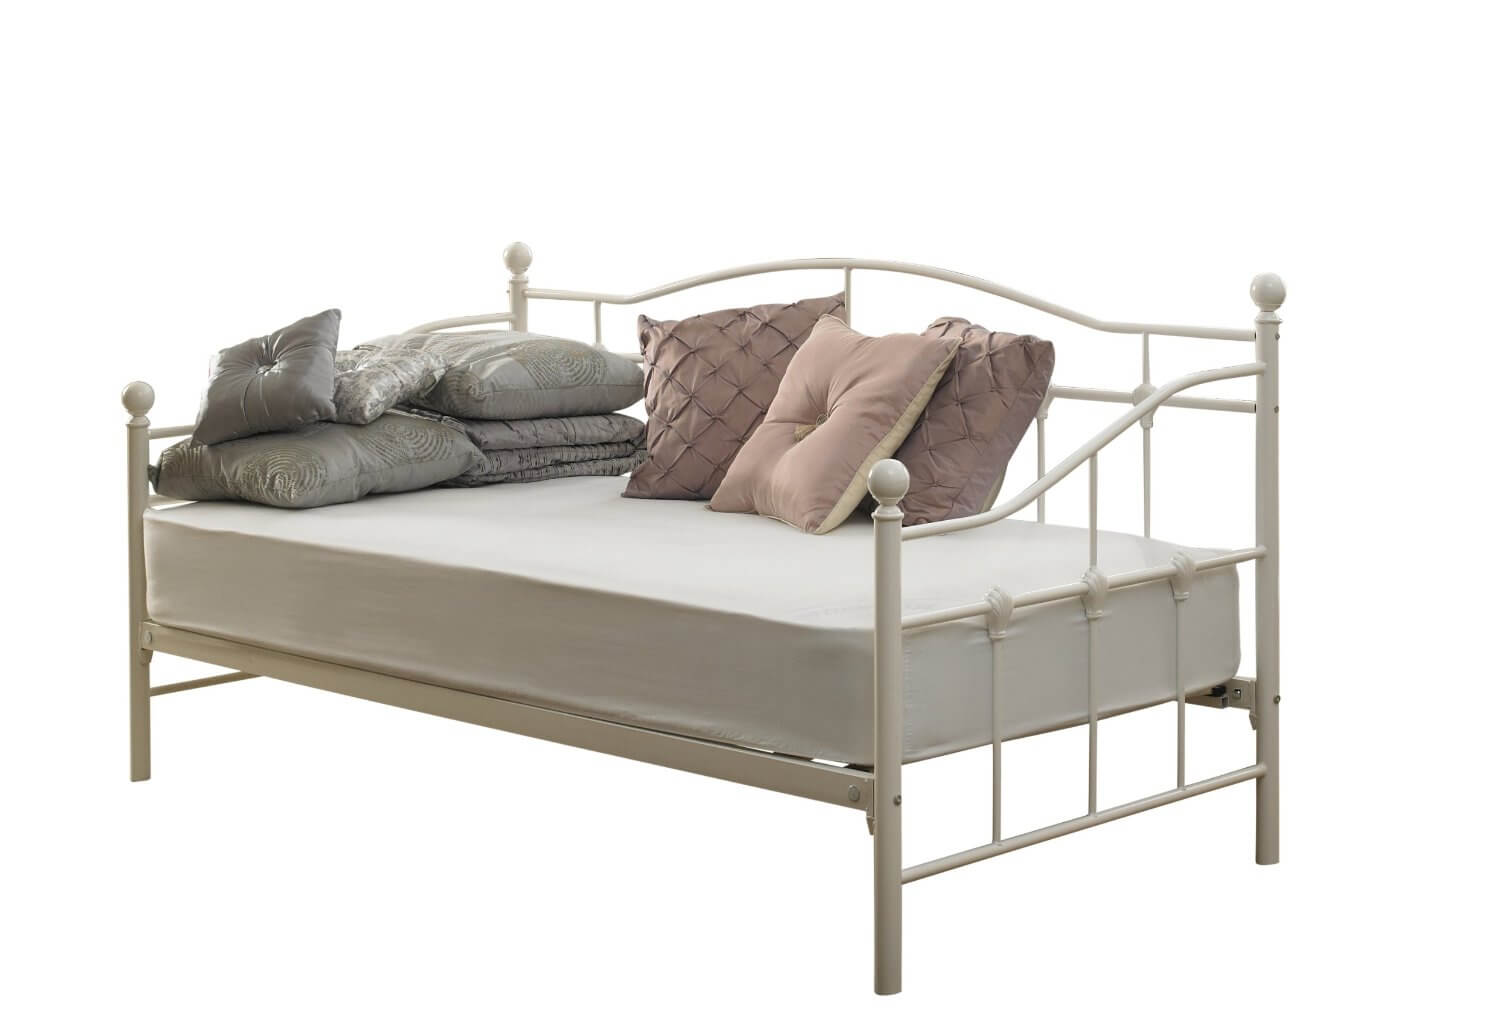 pull out sofa beds uk 250cm the complete buyers guide to bed frames - buys